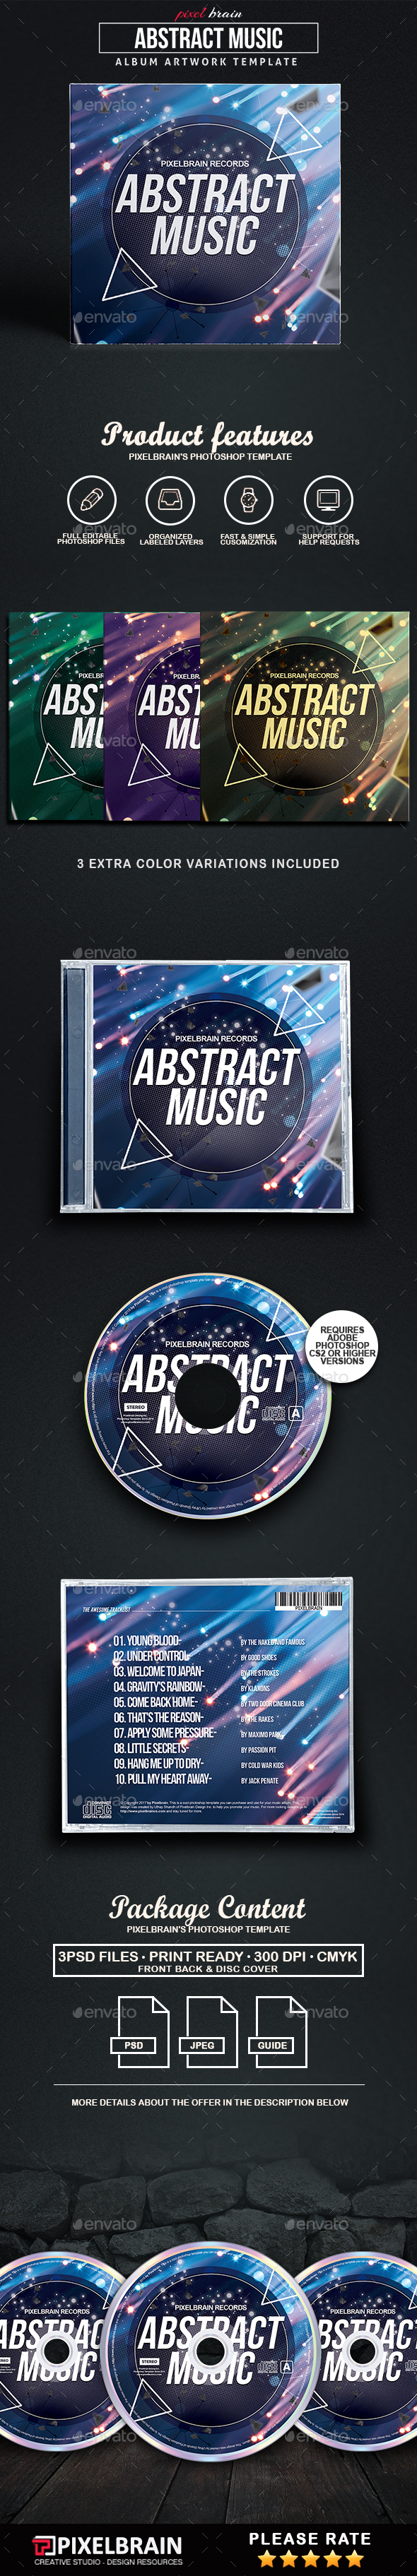 Abstract Music CD Cover Artwork - CD & DVD Artwork Print Templates